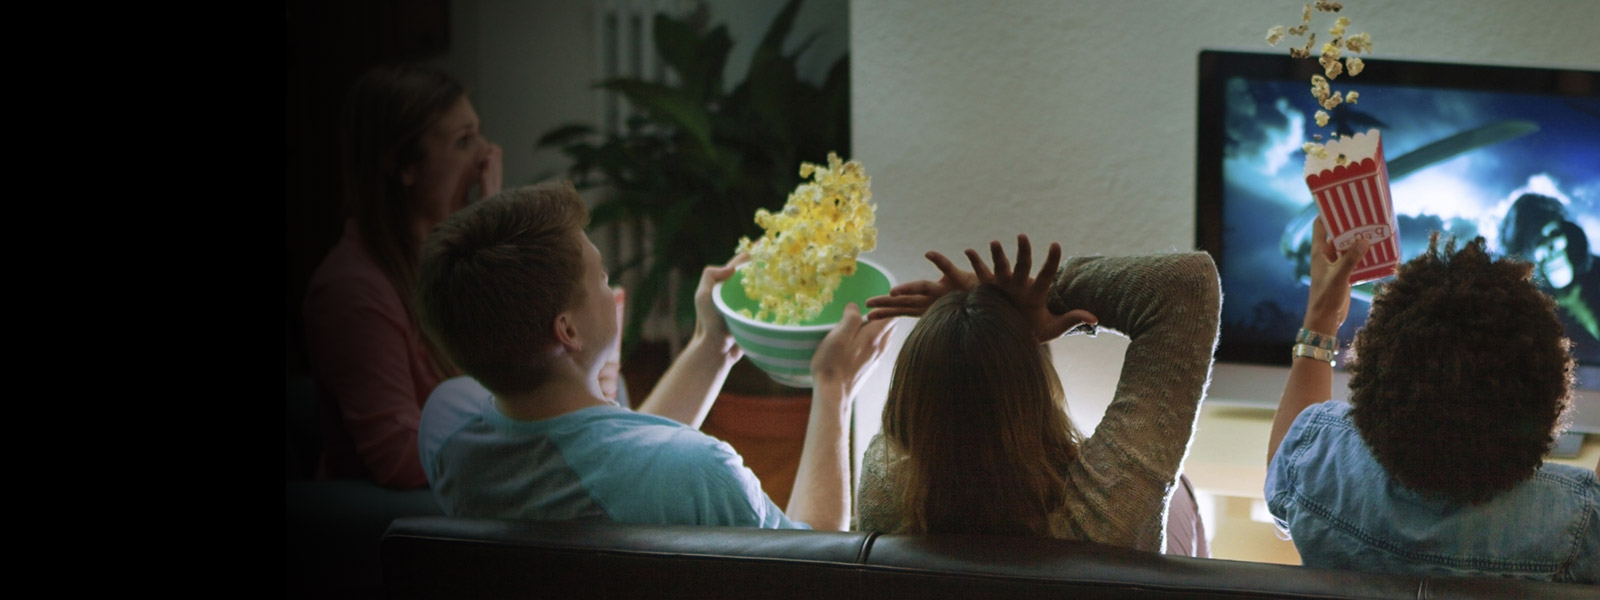 People sitting on a sofa watching a film